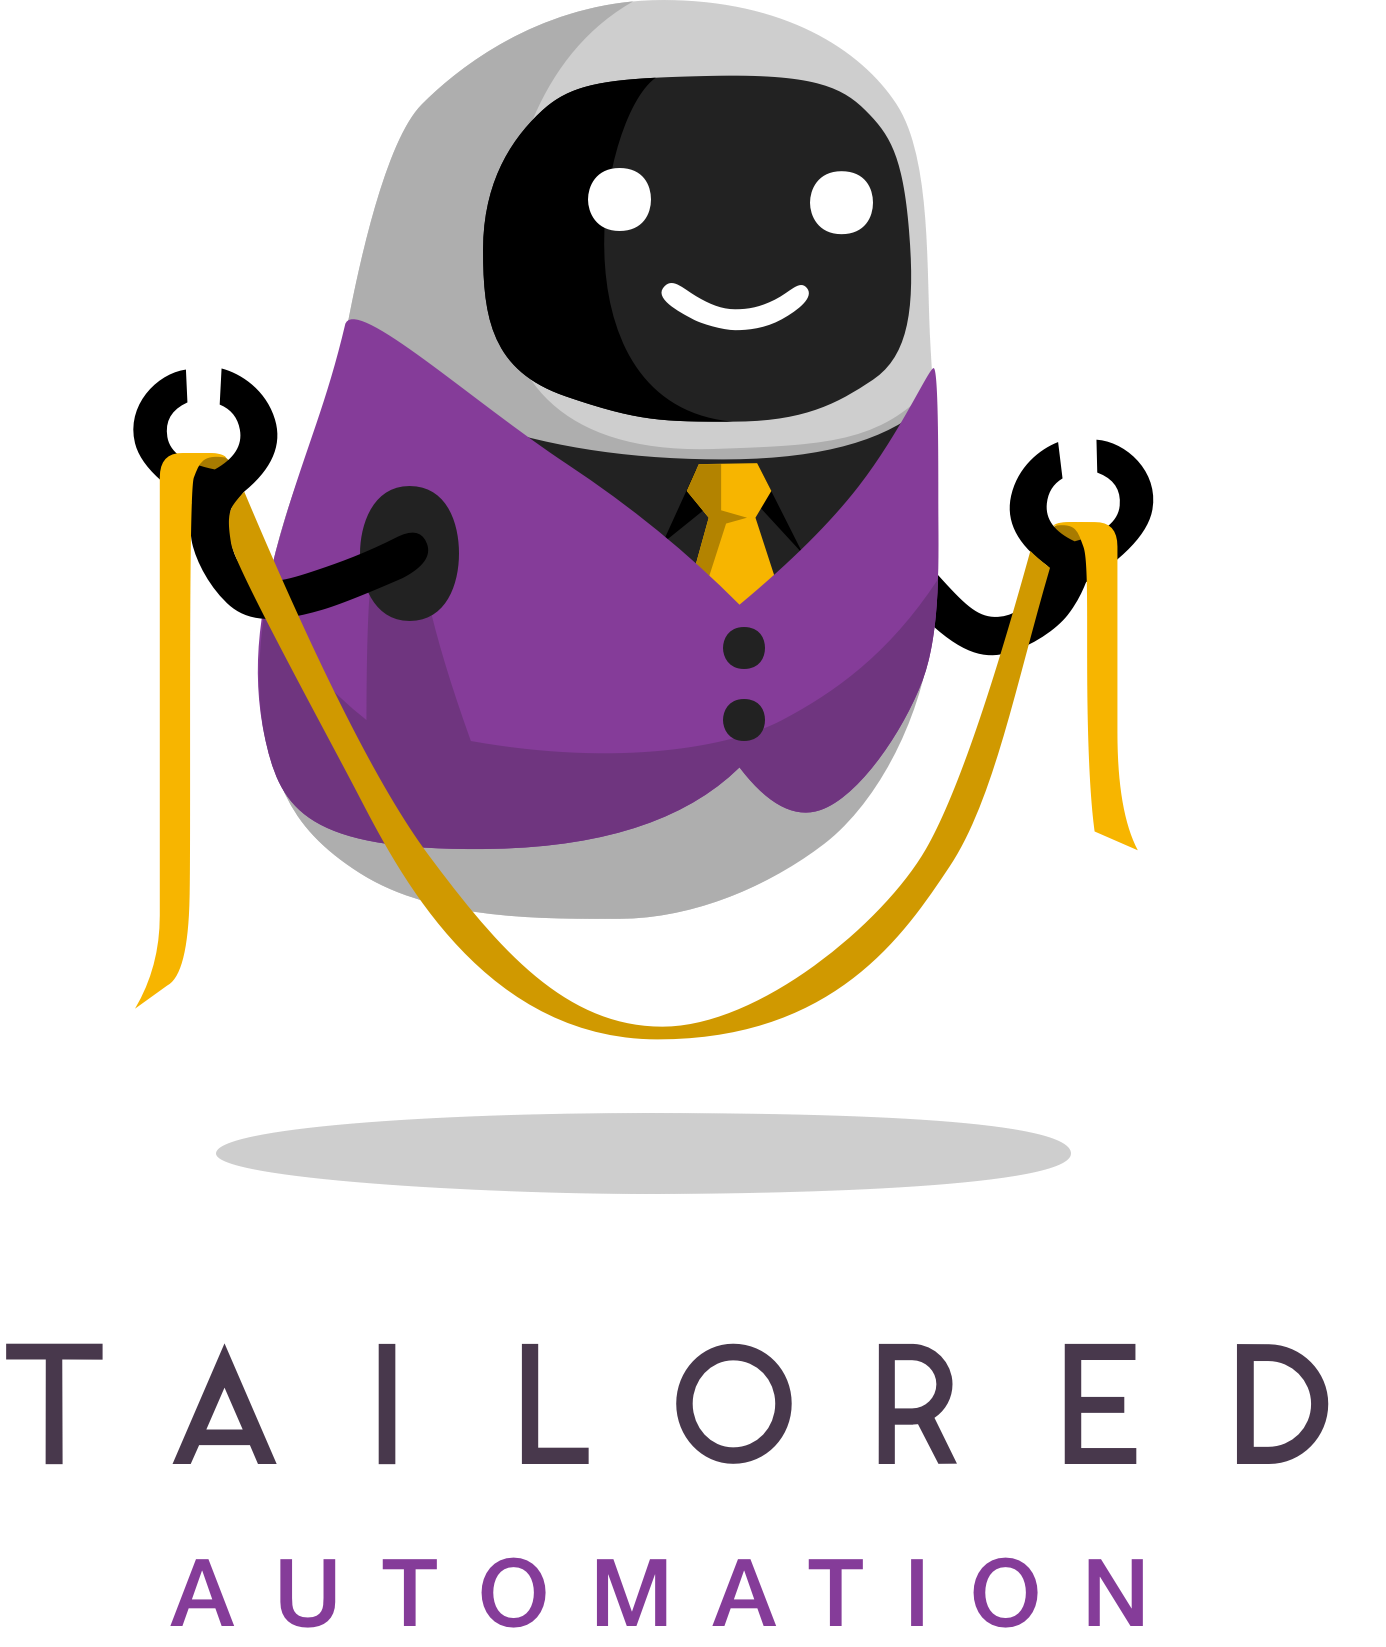 Tailored Automation